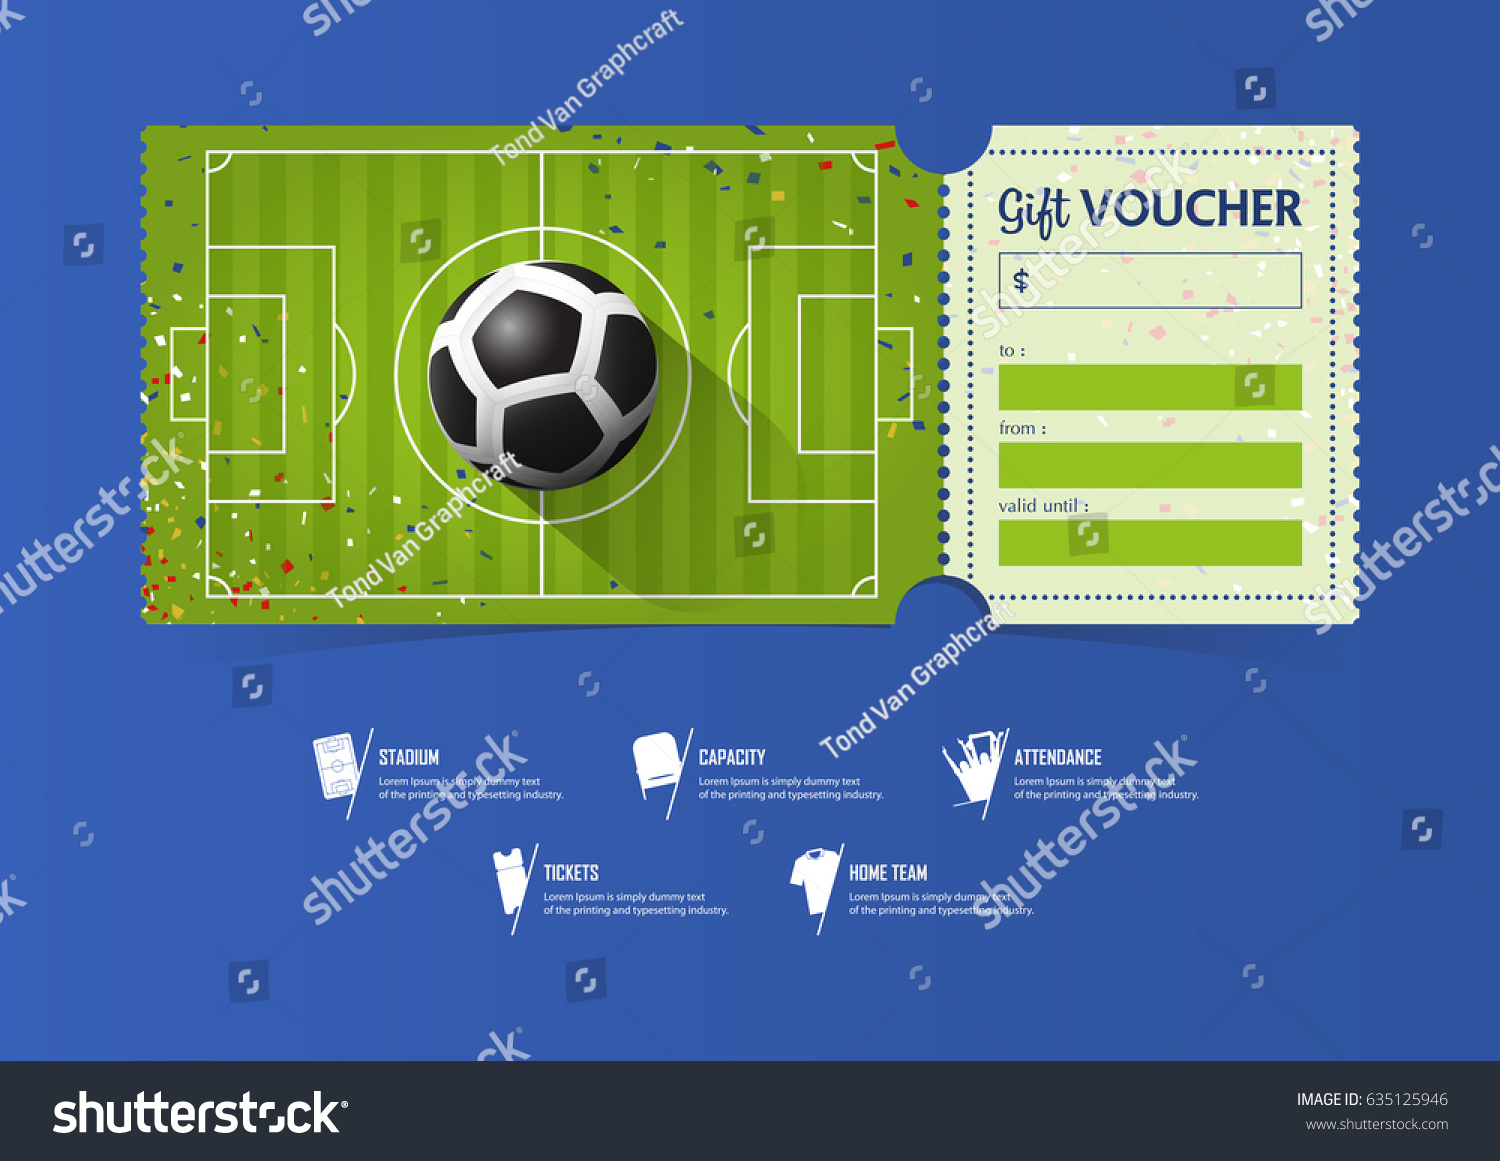 Tickets template design for football or soccer match. Gift.